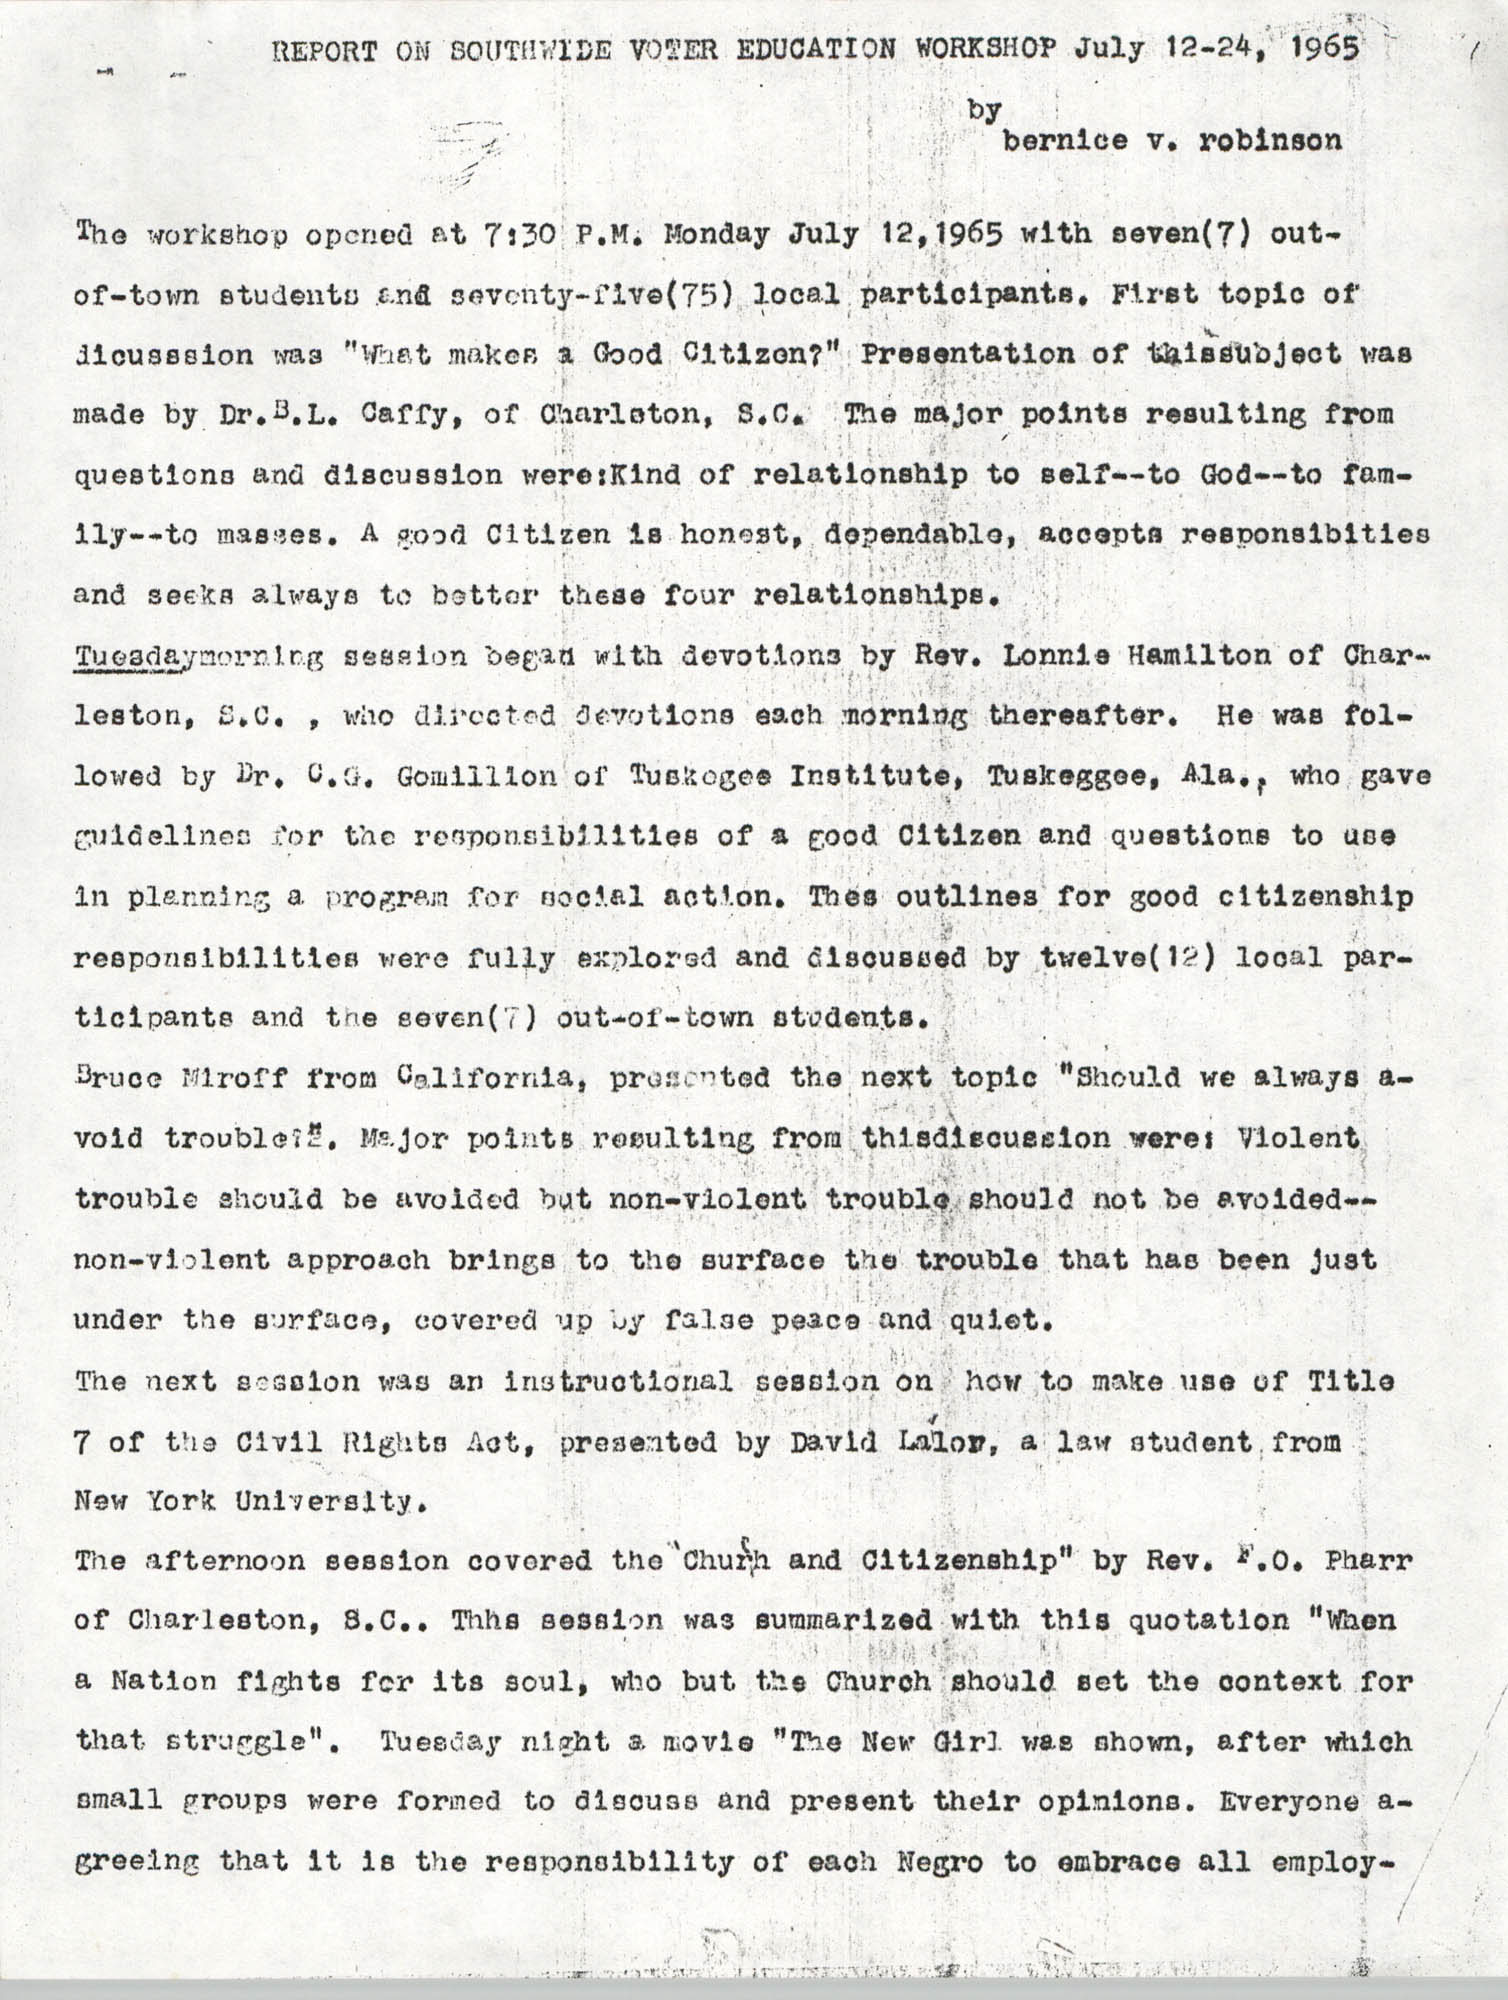 Report on Southwide Voter Education Workshop, 1965